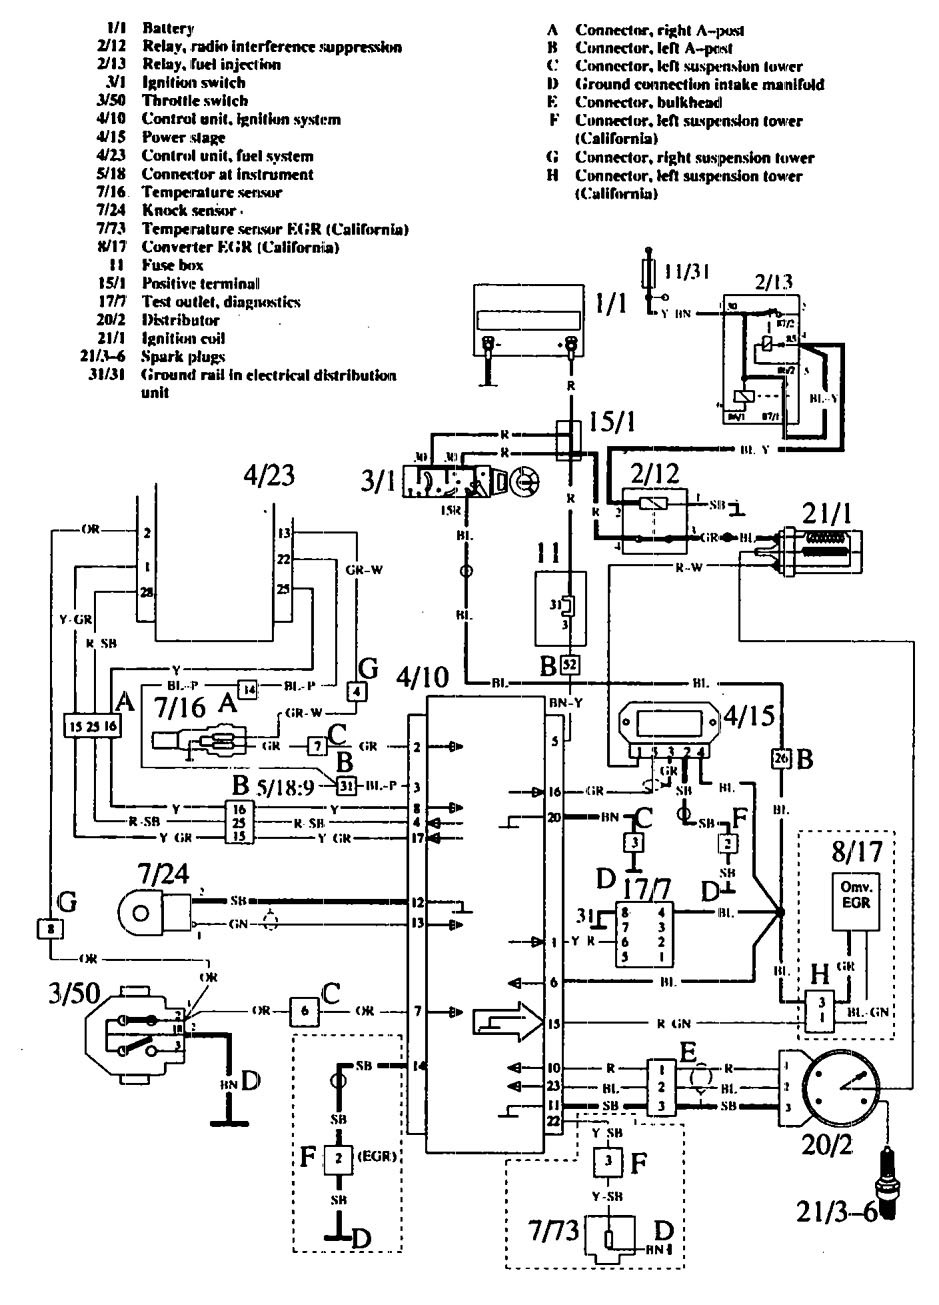 volvo-760-wiring-diagram-ignition-1990 Volvo Ignition Switch Wiring Diagram on